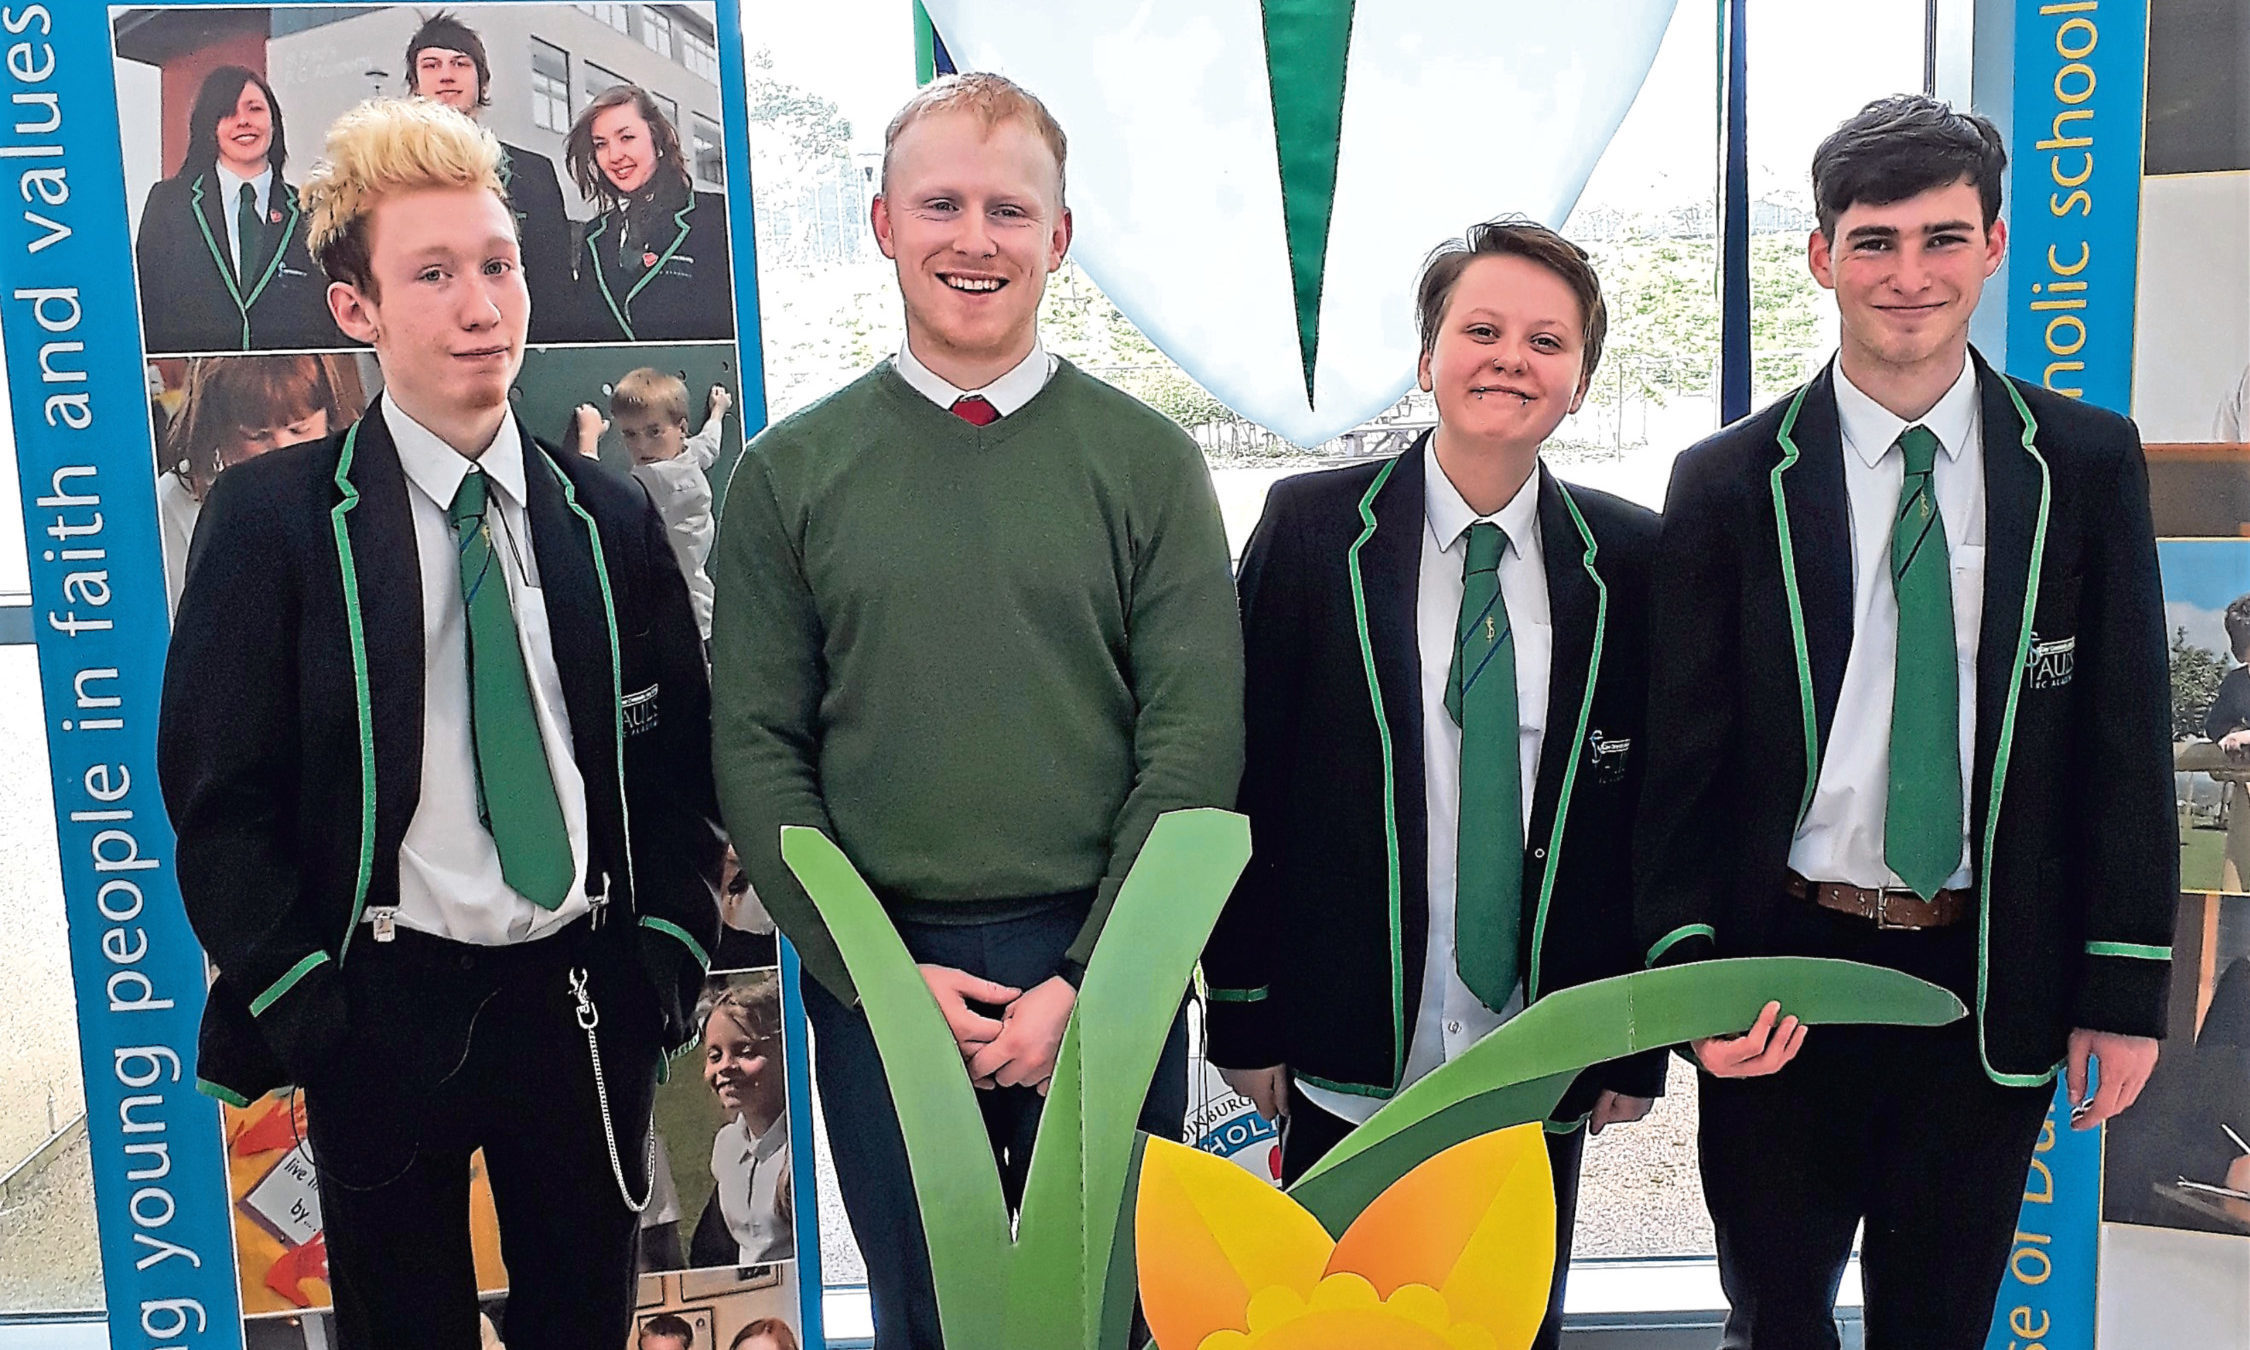 Pictured are, from left, Joseph Dailly, Diarmaid McNulty (support for learning), Rebecca Mackie and Scott Regen